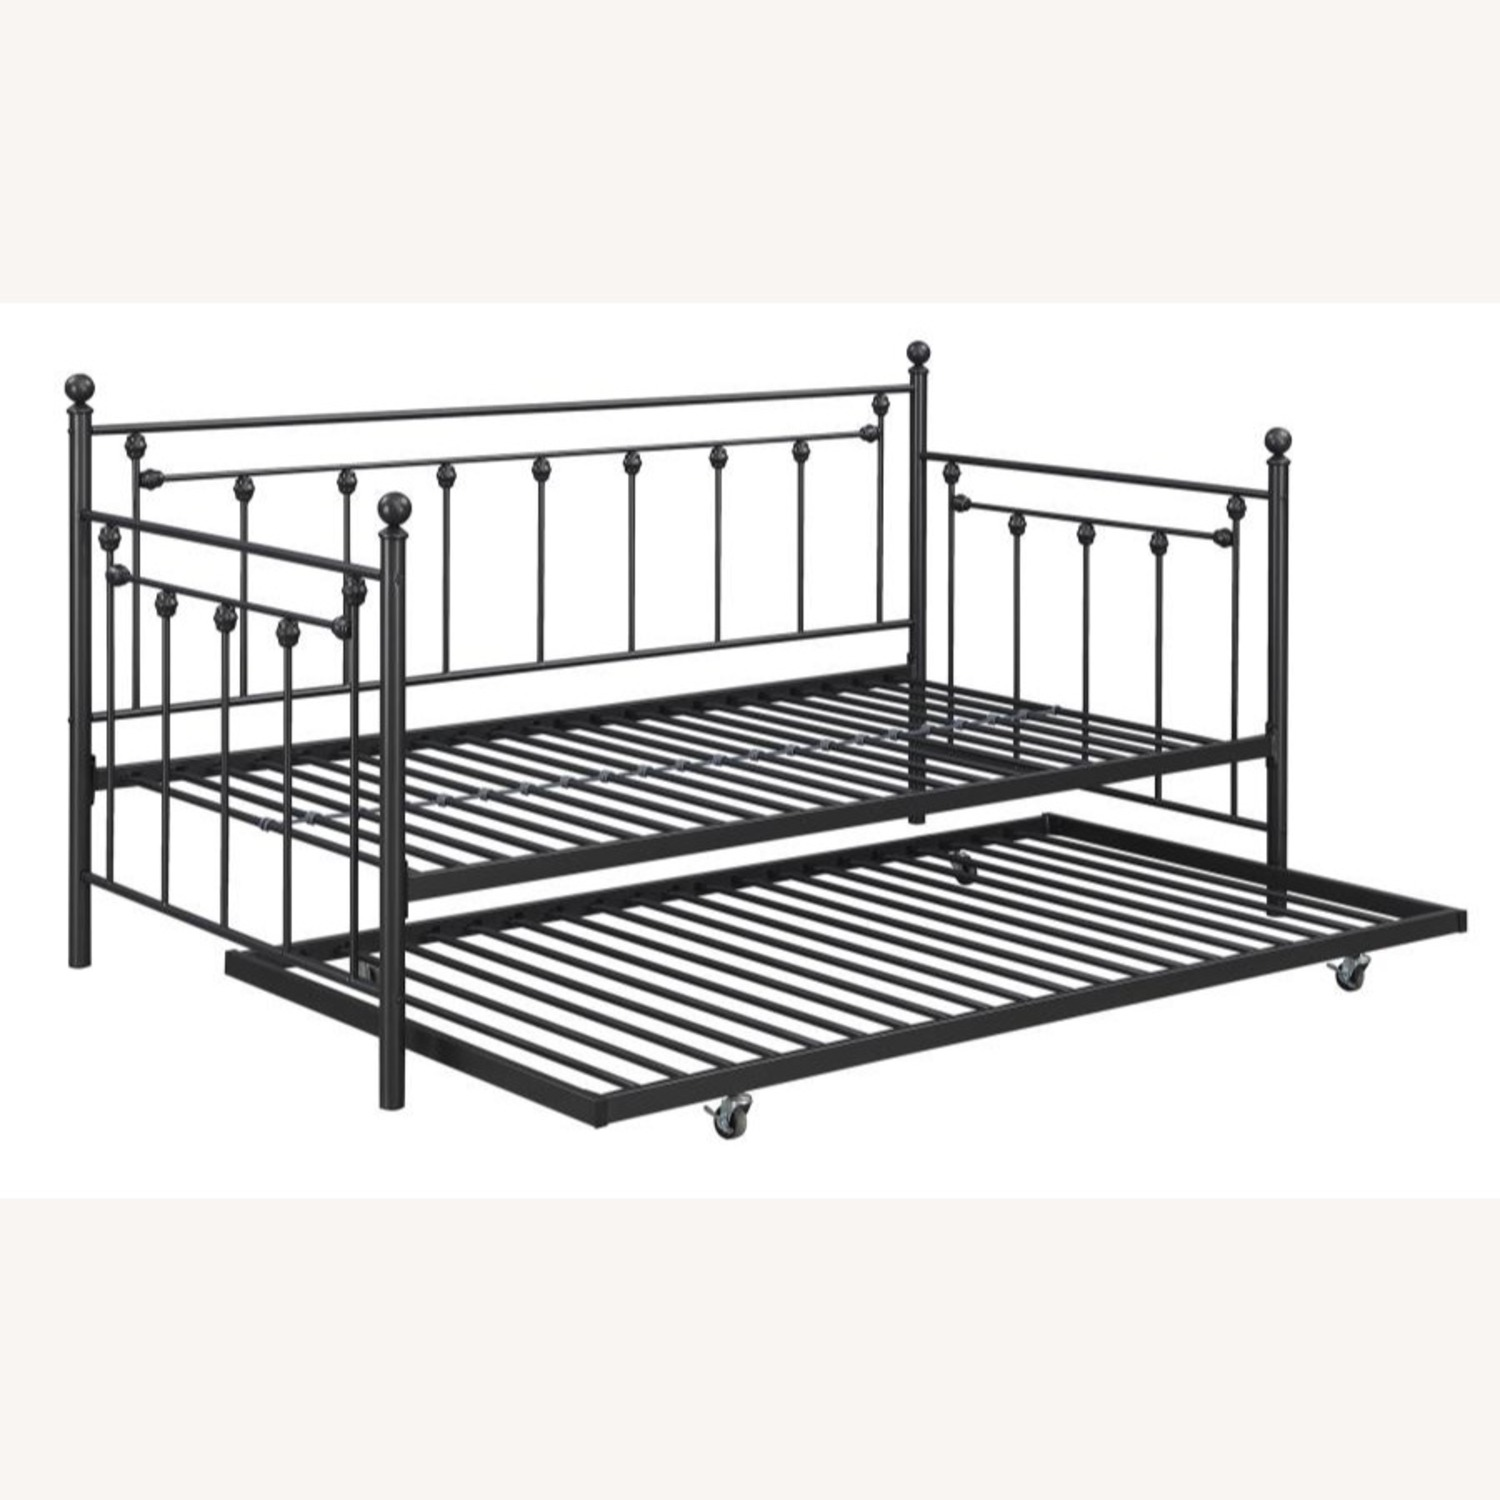 Daybed In Gunmetal Steel Finish W/ Trundle - image-1